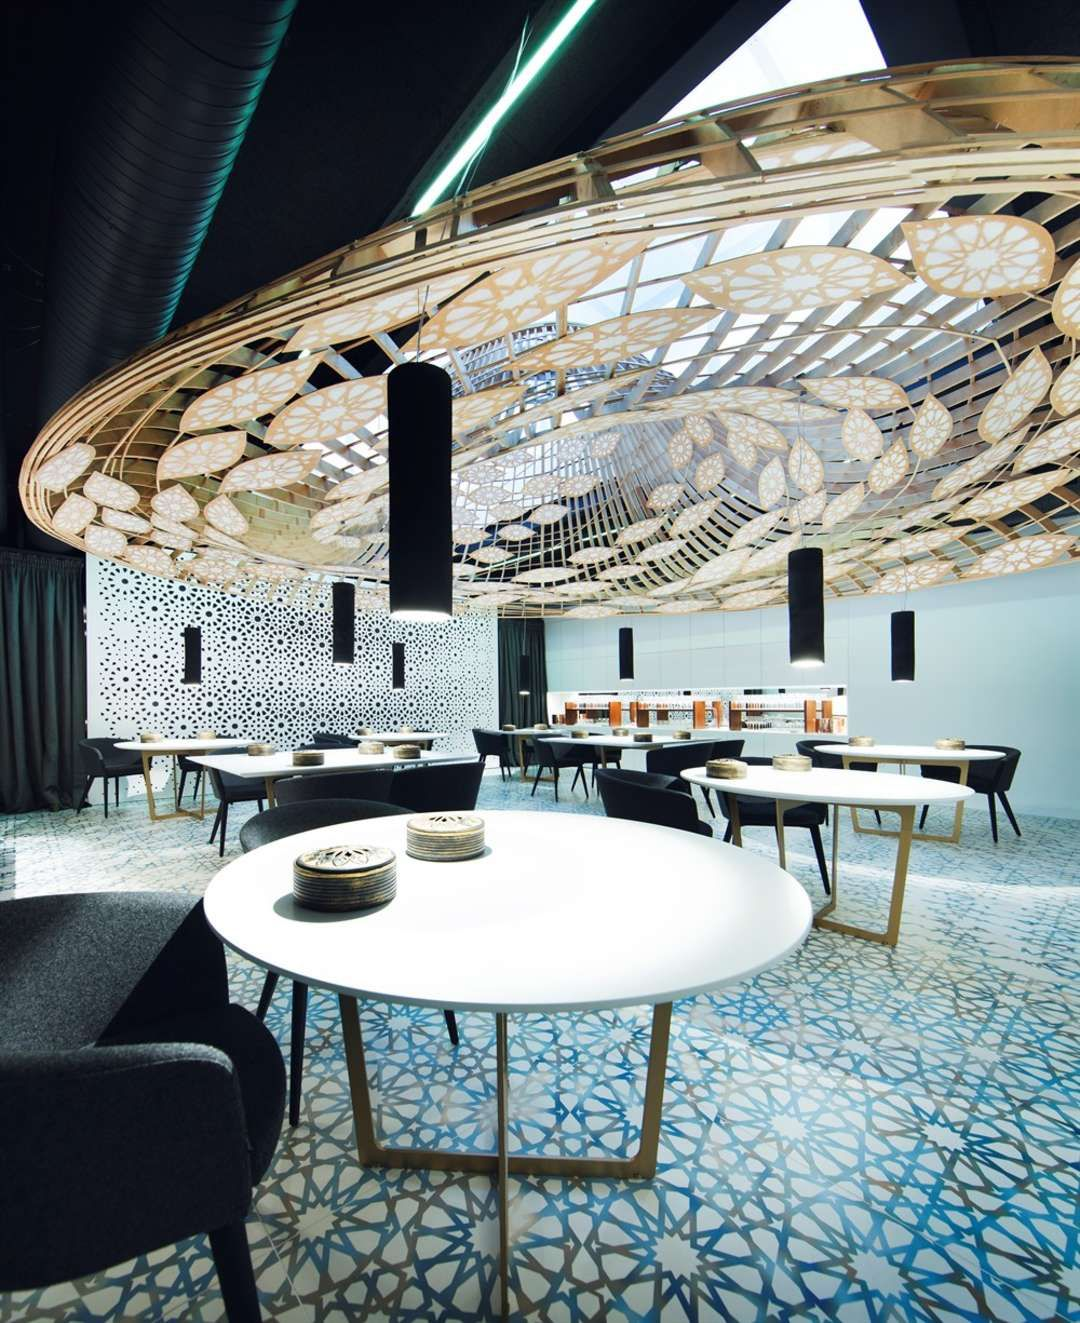 NOOR RESTAURANT, CONTEMPORARY ARCHITECTURE WITH ANDALUSIAN SOUL ...